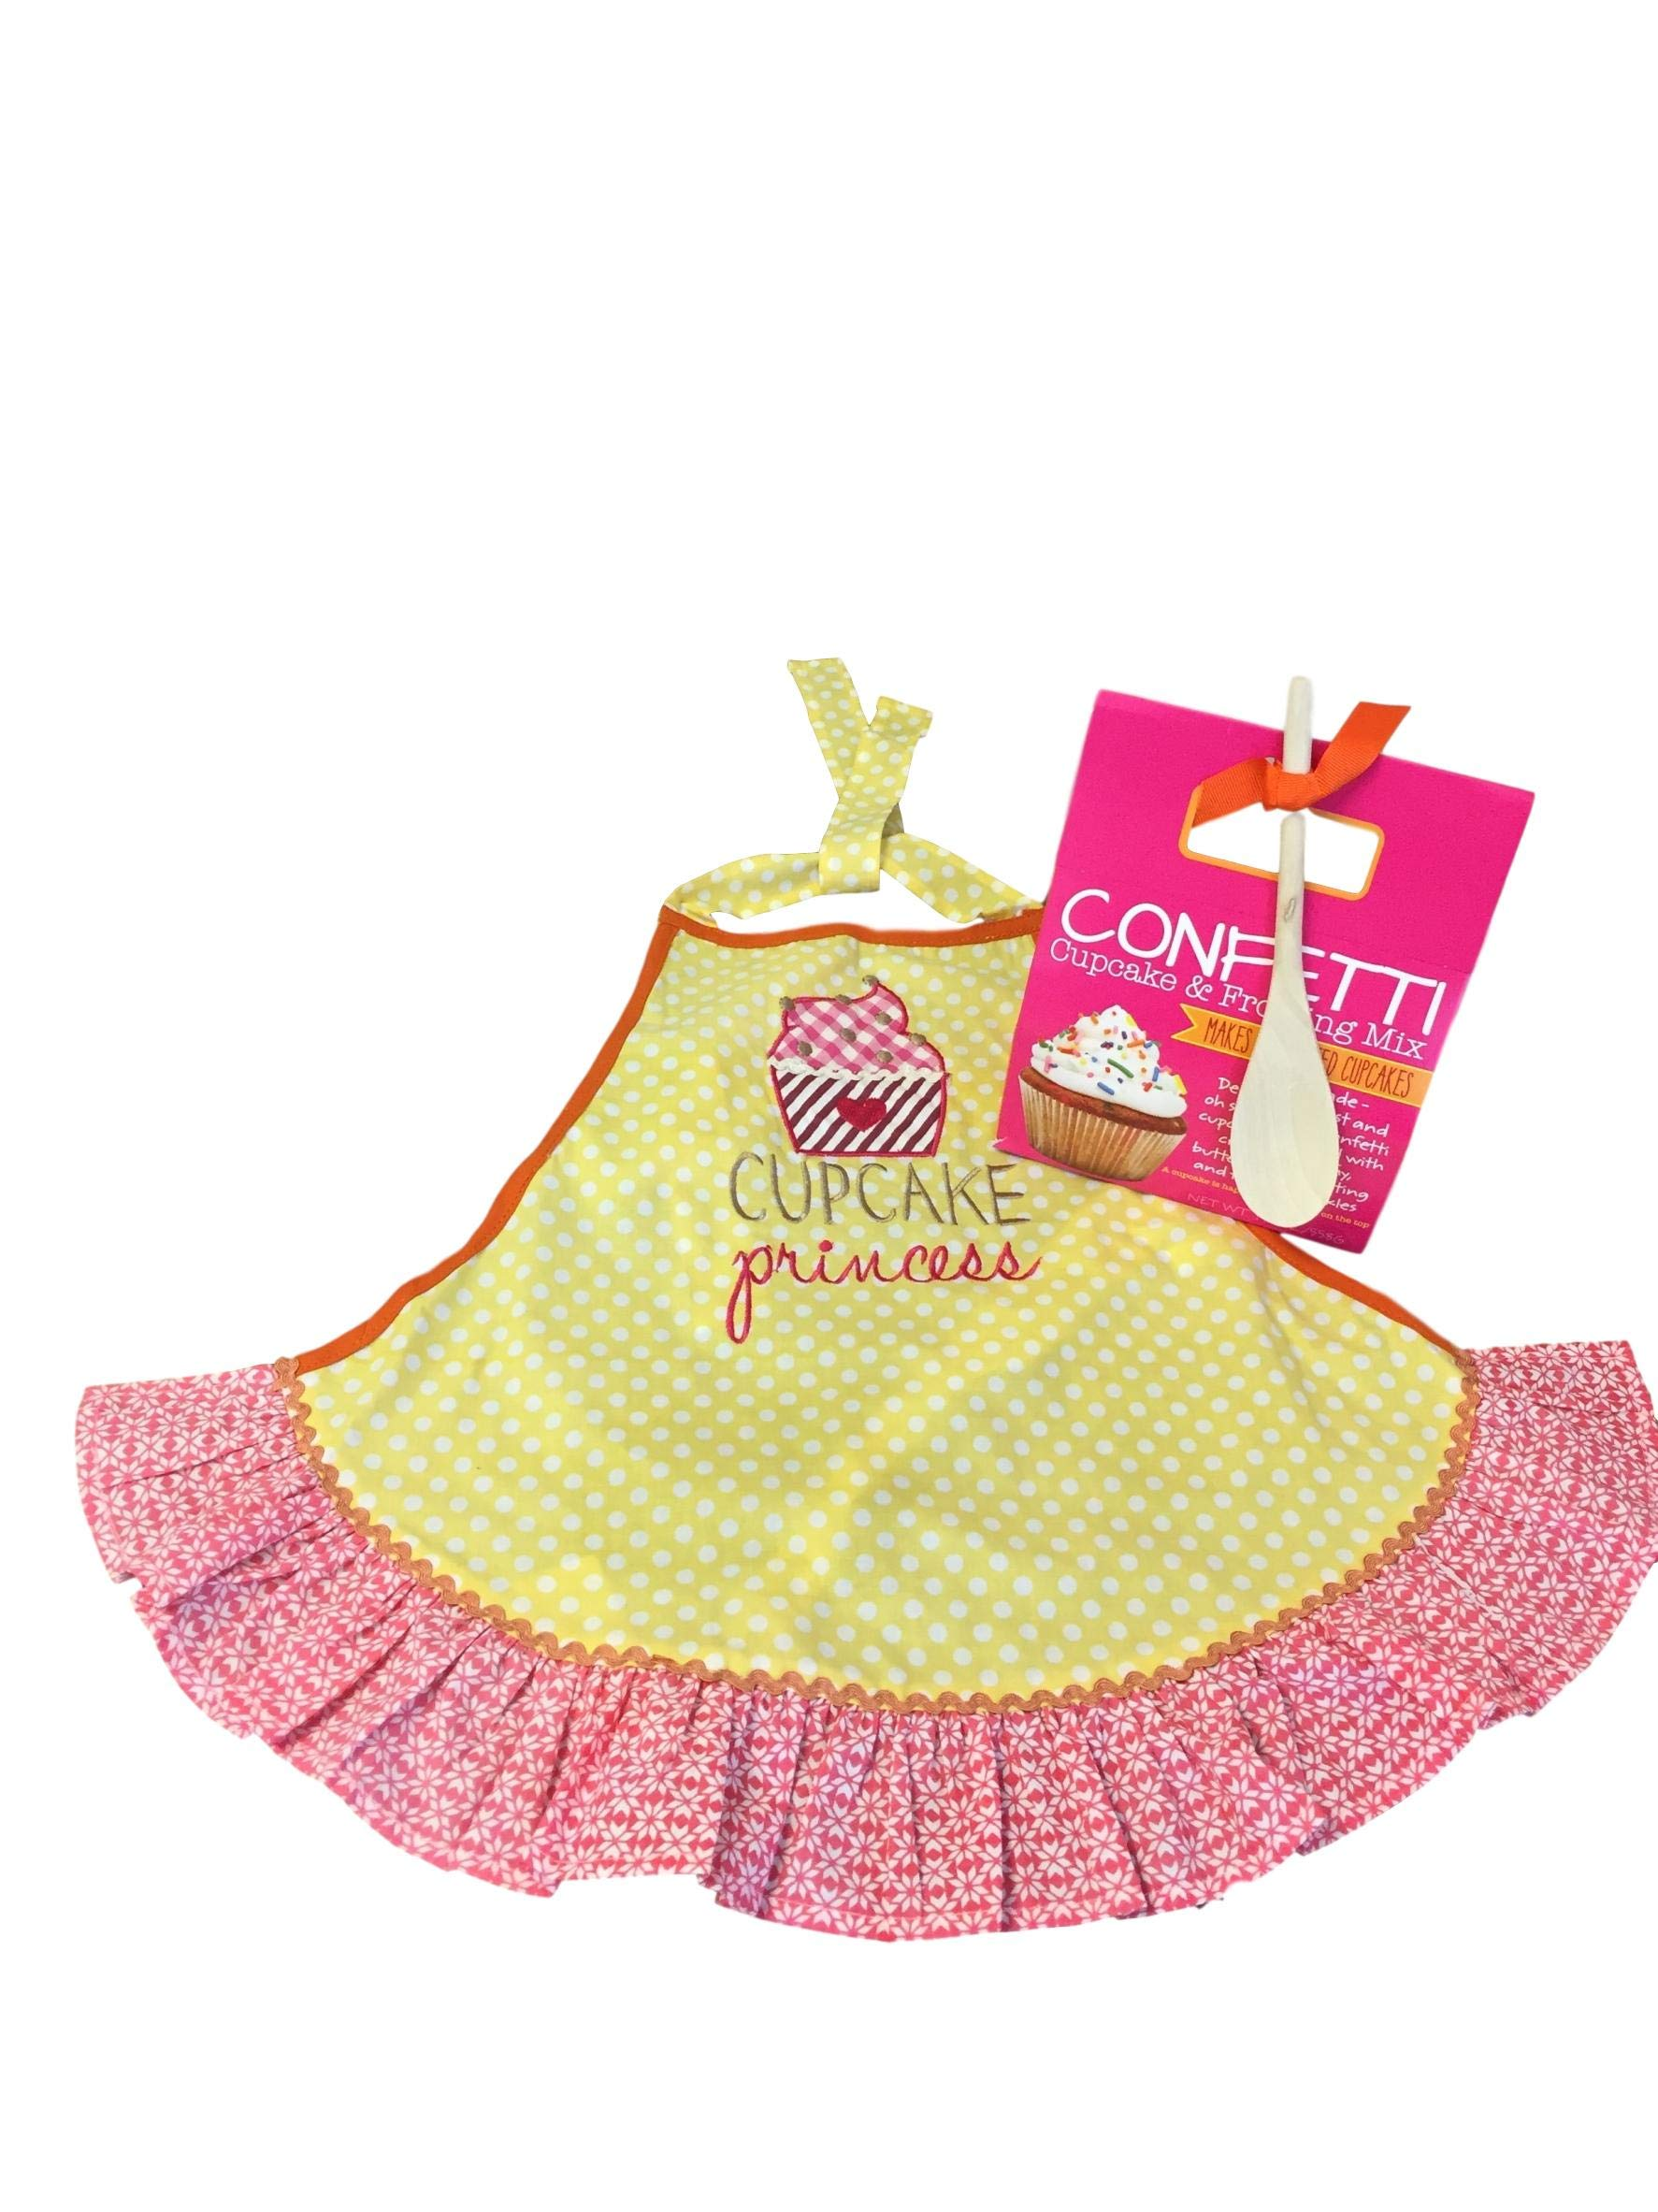 Baking Bundle with Girl's 'Cupcake Princess' Apron and Confetti Cupcake & Frosting Kit